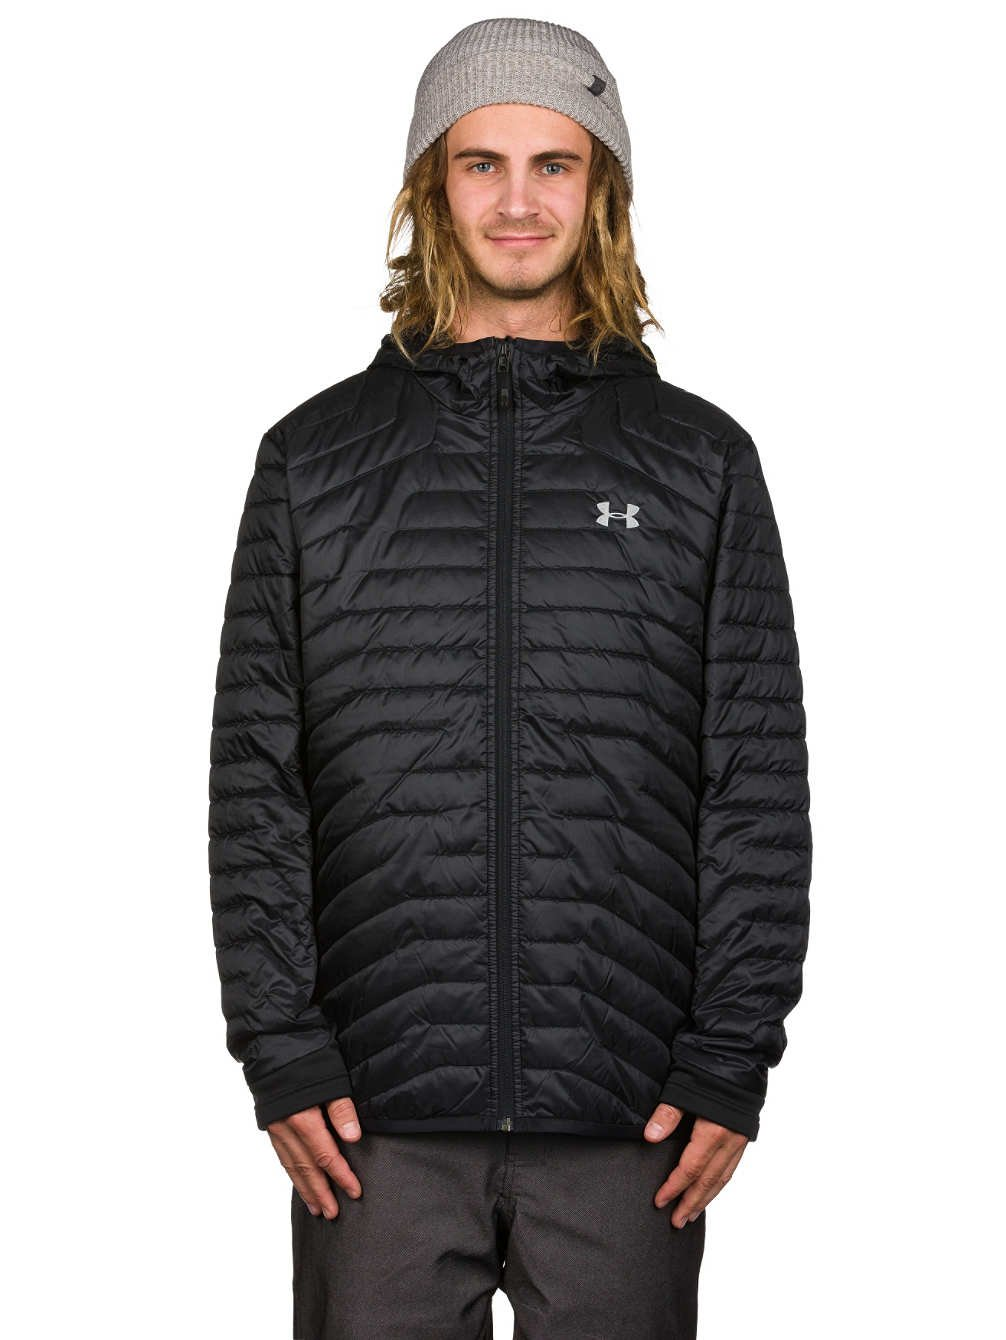 Snowwear Jacket Men Under Armour UA CGR Hybrid Jacket